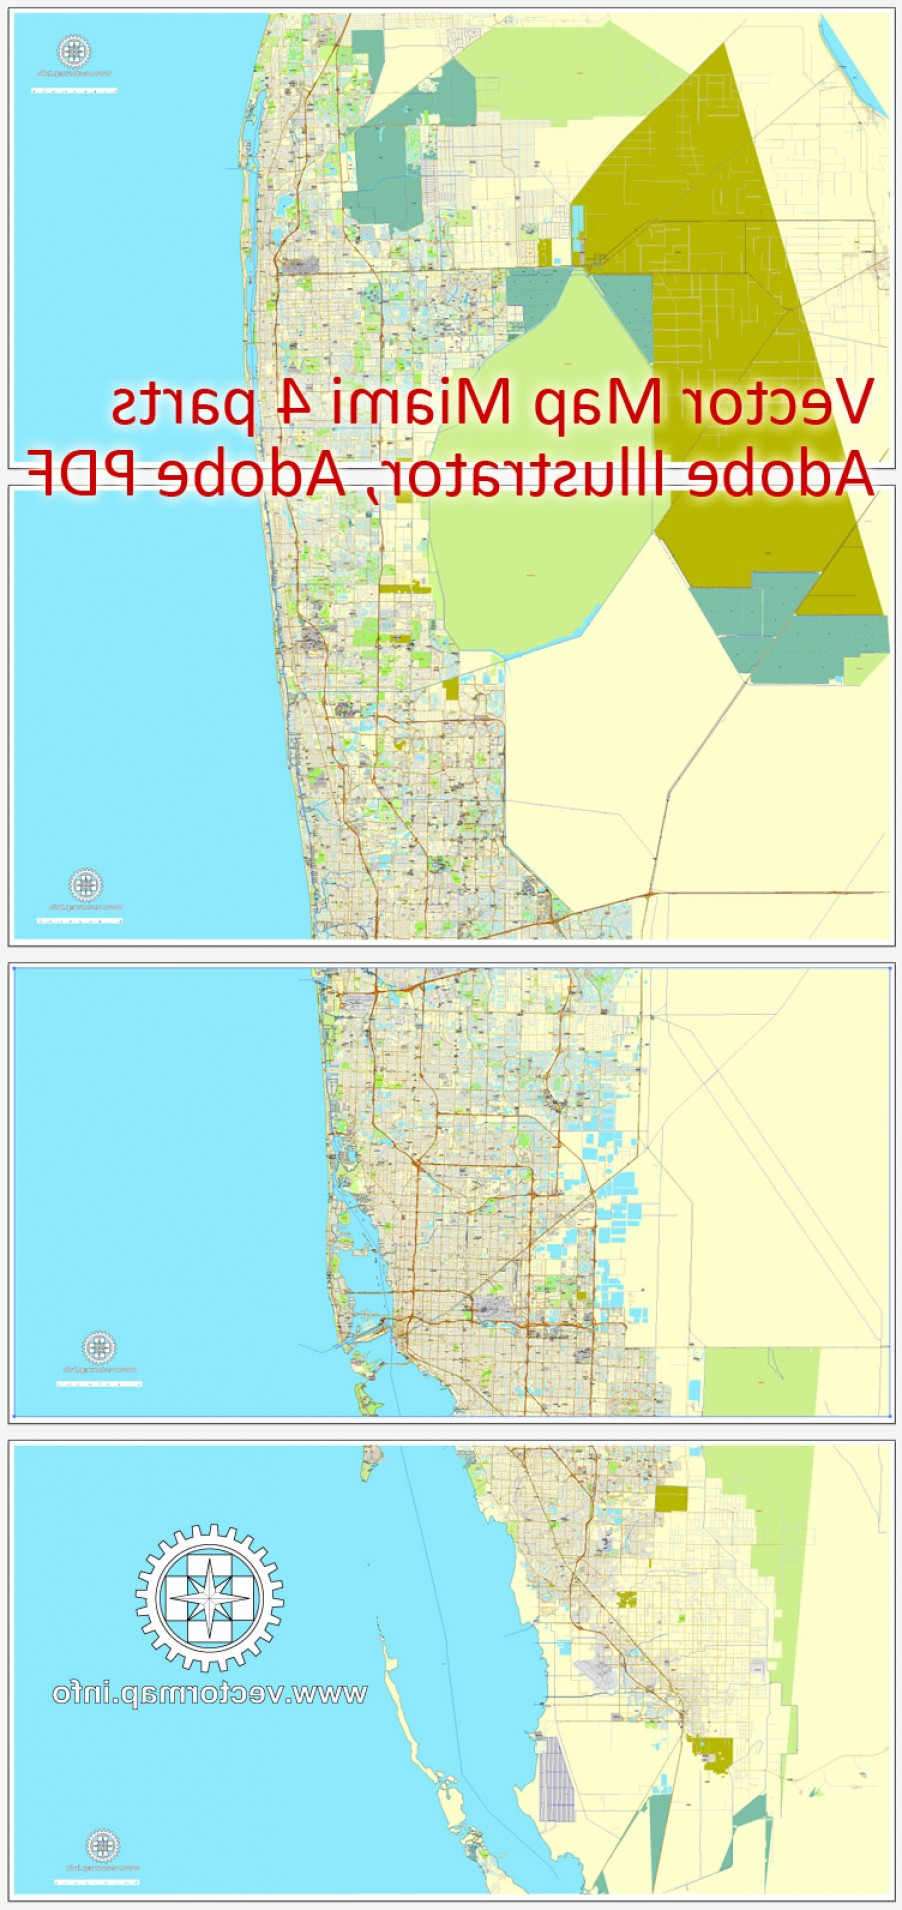 Midtown East Map Vector: Miami Florida Us Printable Vector Street City Plan Map Parts Full Editable Adobe Illustrator